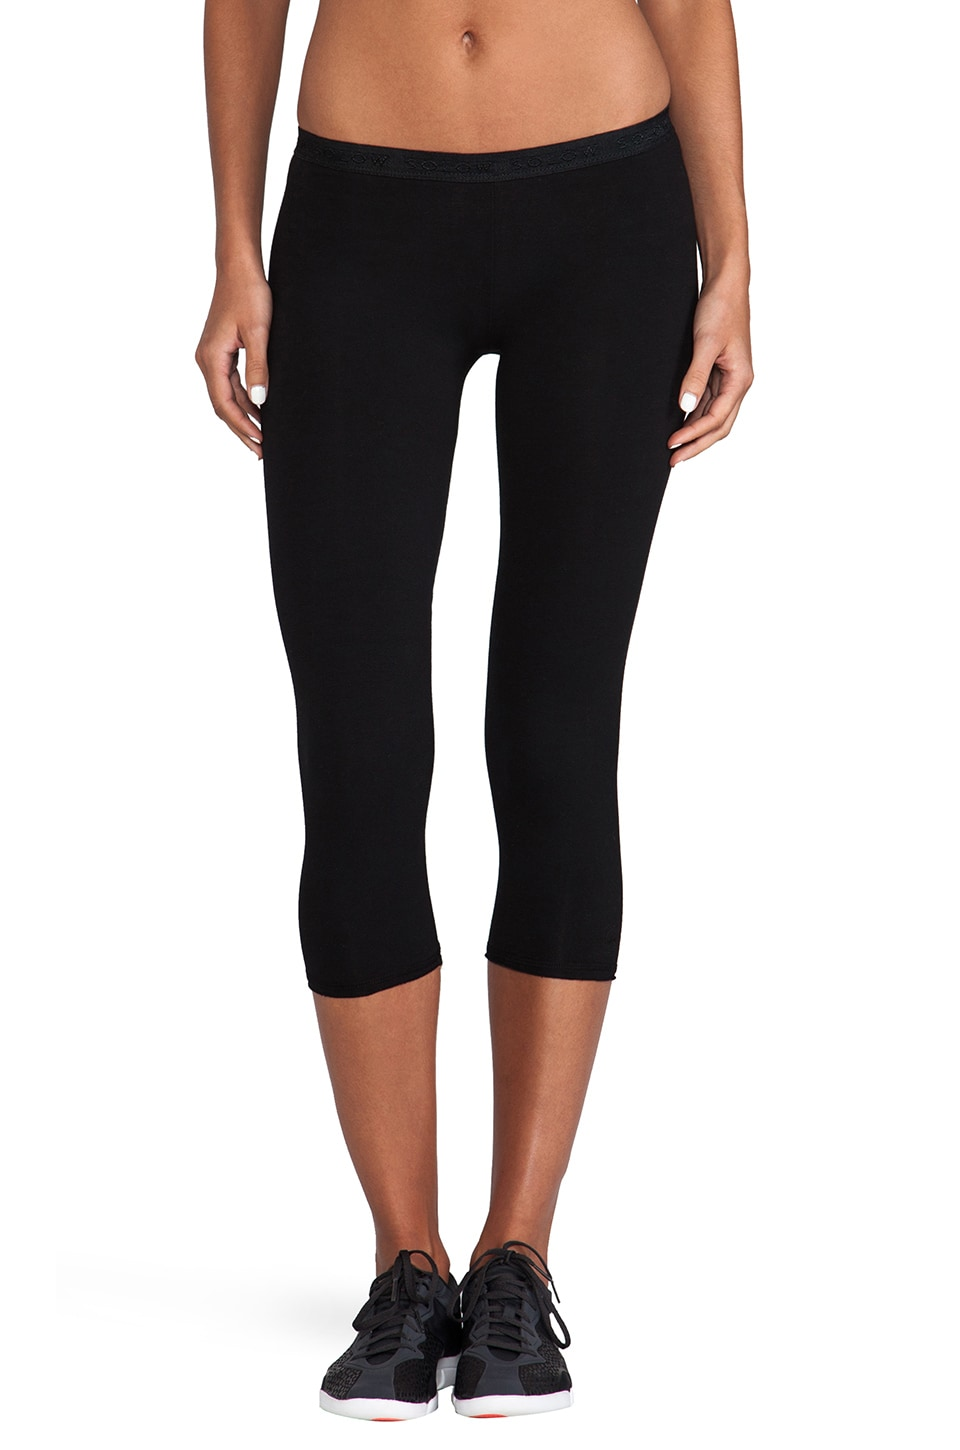 SOLOW Basic Crop Legging in Black